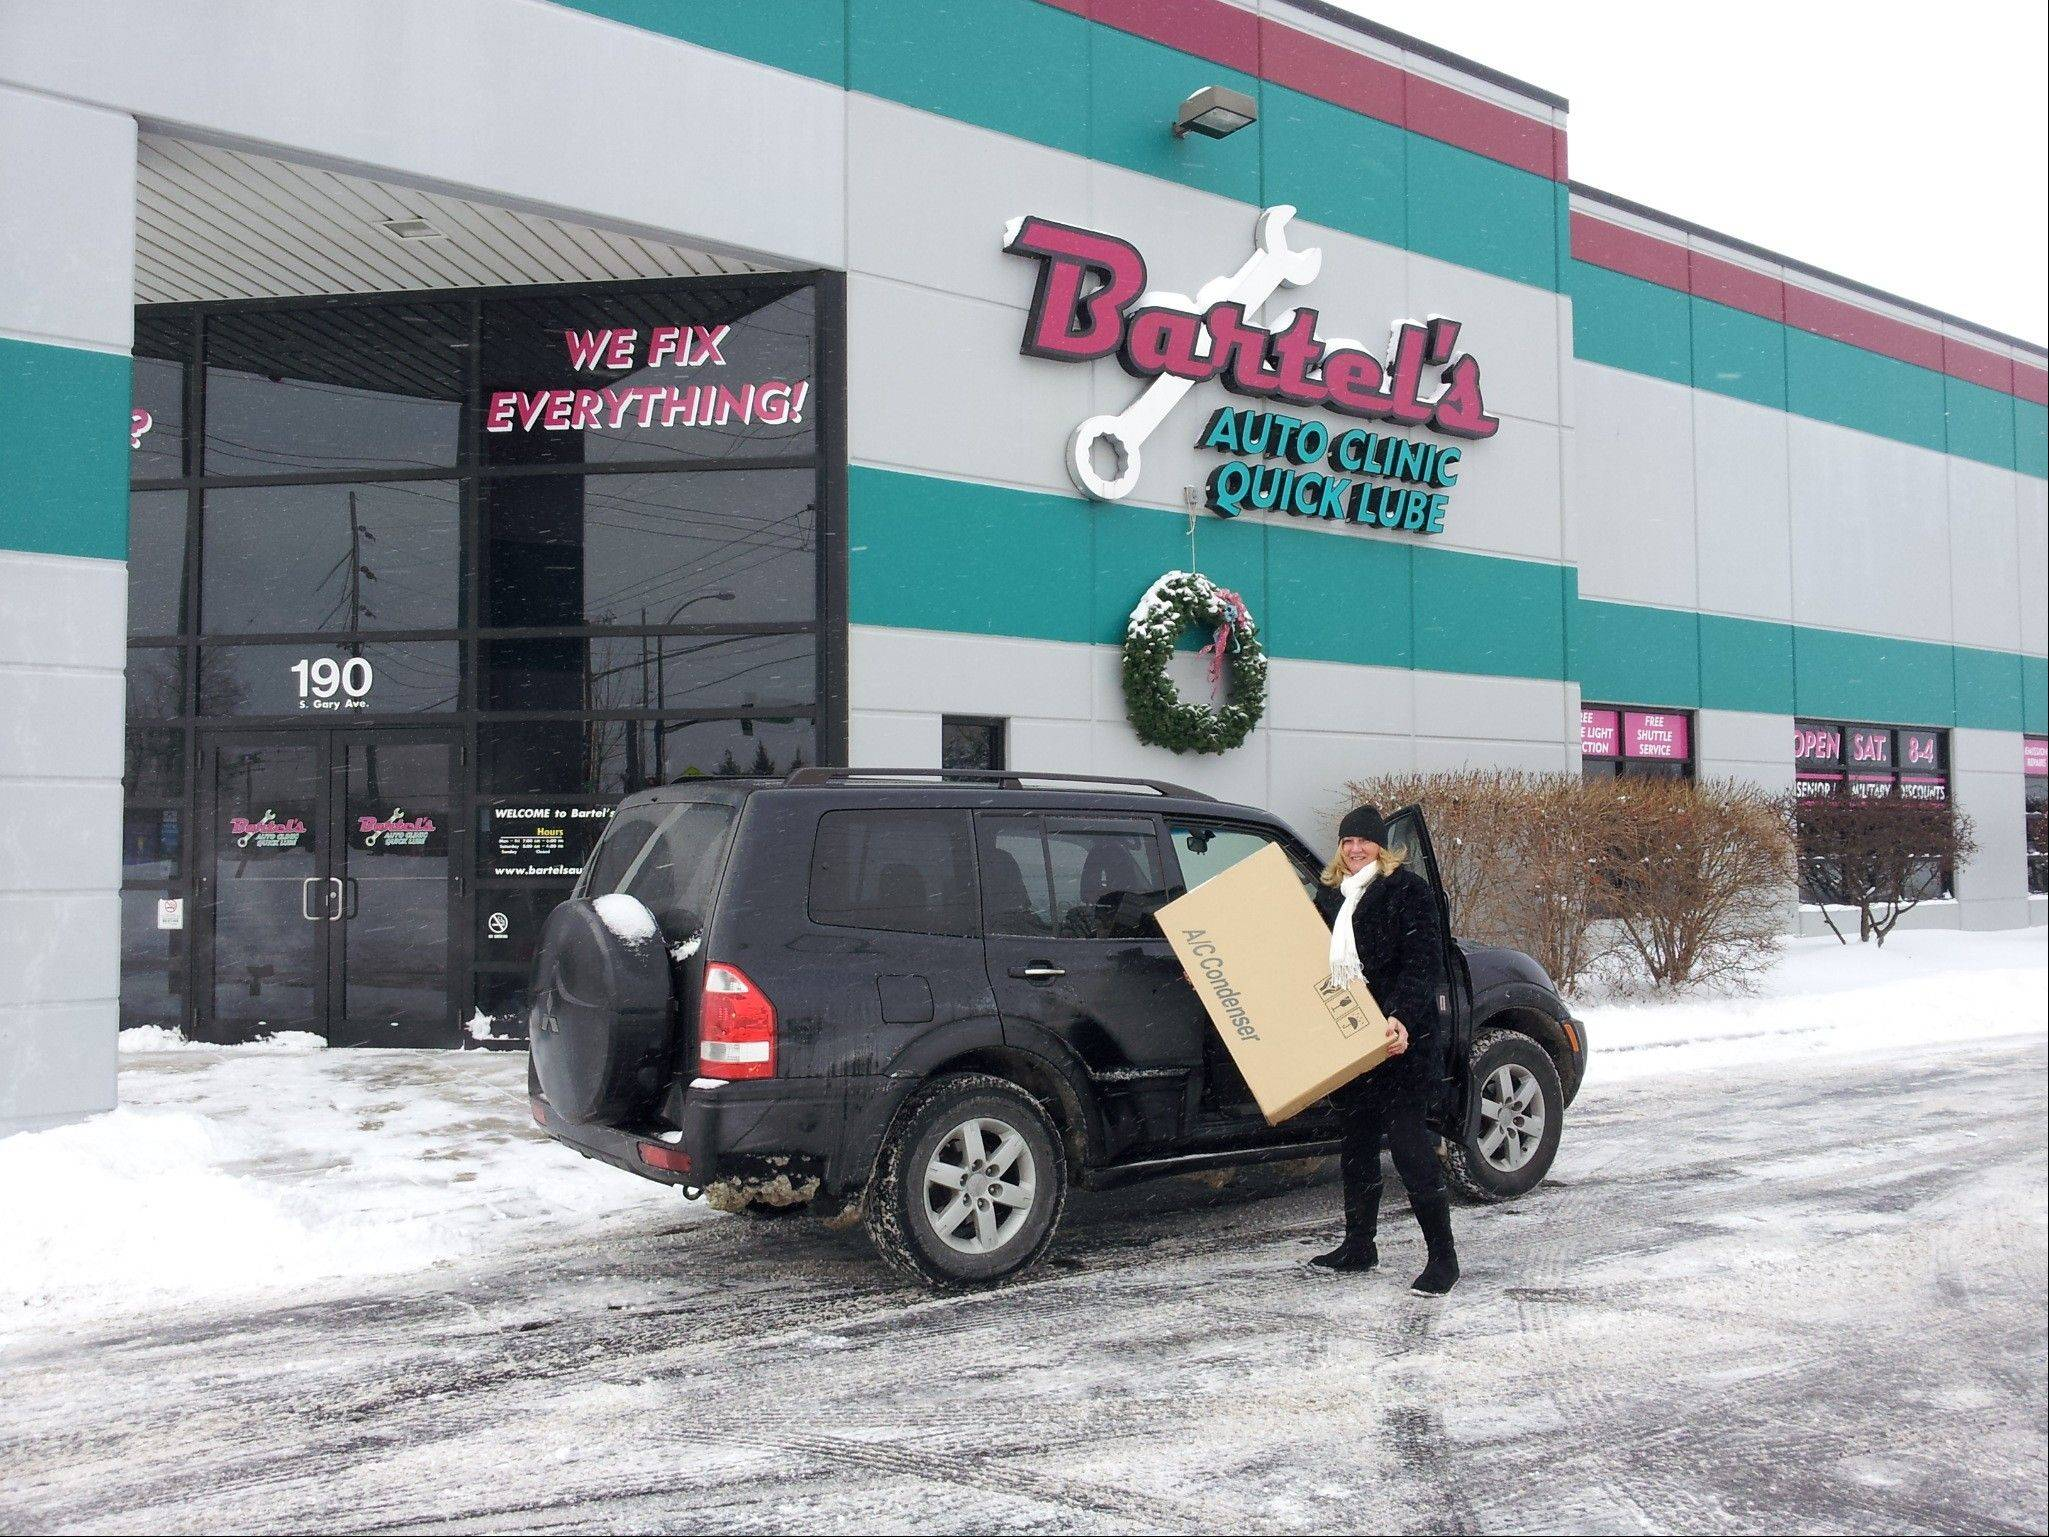 MaryAnn Hogan, customer service manager, goes out into the snowstorm on Thursday to pick up a part for a customer's car being serviced at Bartel's Auto Clinics.